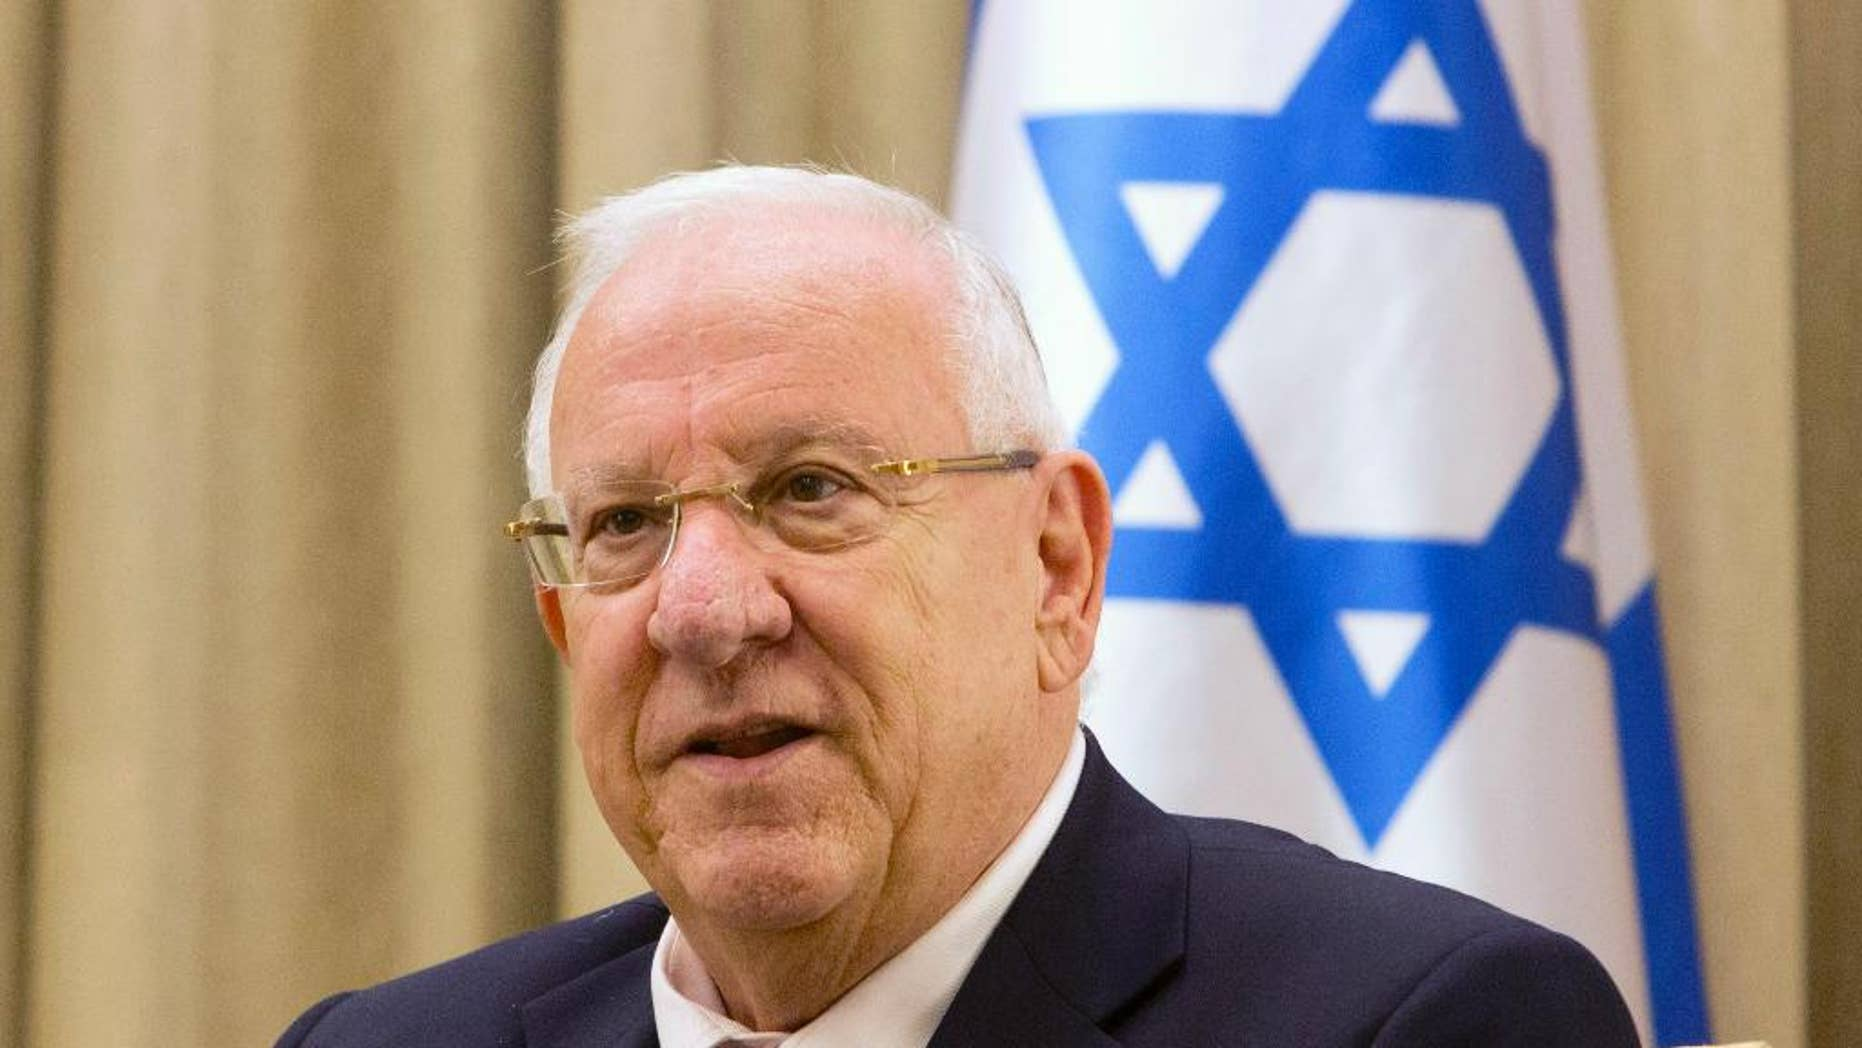 FILE - In this Nov. 3, 2014 file photo, Israel's President Reuven Rivlin, attends a meeting at the President's residence in Jerusalem. A canceled bar mitzvah ceremony for boys with disabilities is highlighting a rift between Israel's Orthodox majority and its more marginal streams of Judaism. President Reuven Rivlin had agreed to hold the ceremony at his residence but later suggested a non-religious event. (AP Photo/Sebastian Scheiner, File)